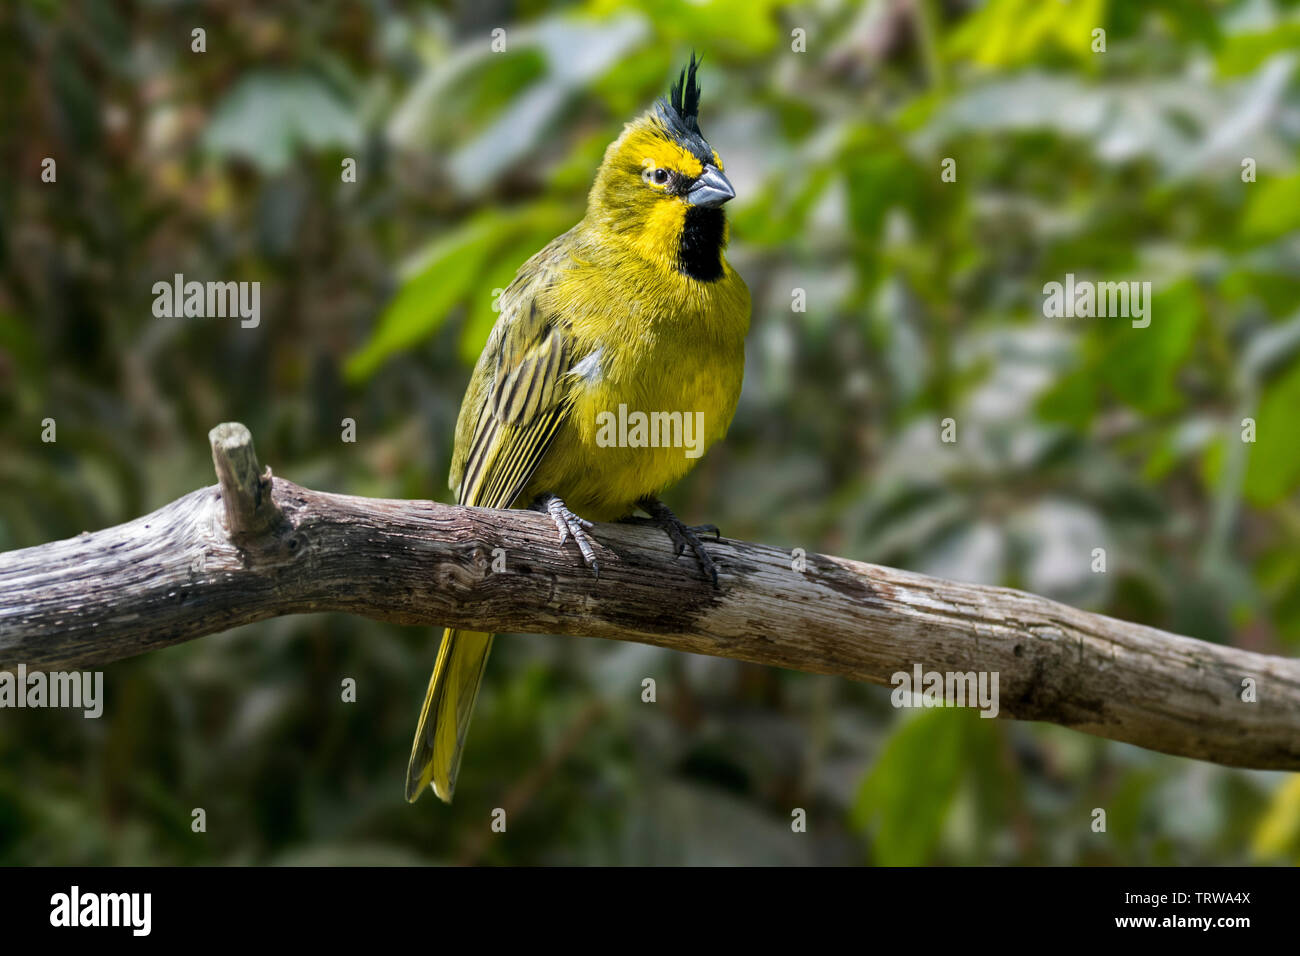 Yellow cardinal (Gubernatrix cristata) perched in tree, native to Argentina, Brazil, Paraguay and Uruguay - Stock Image